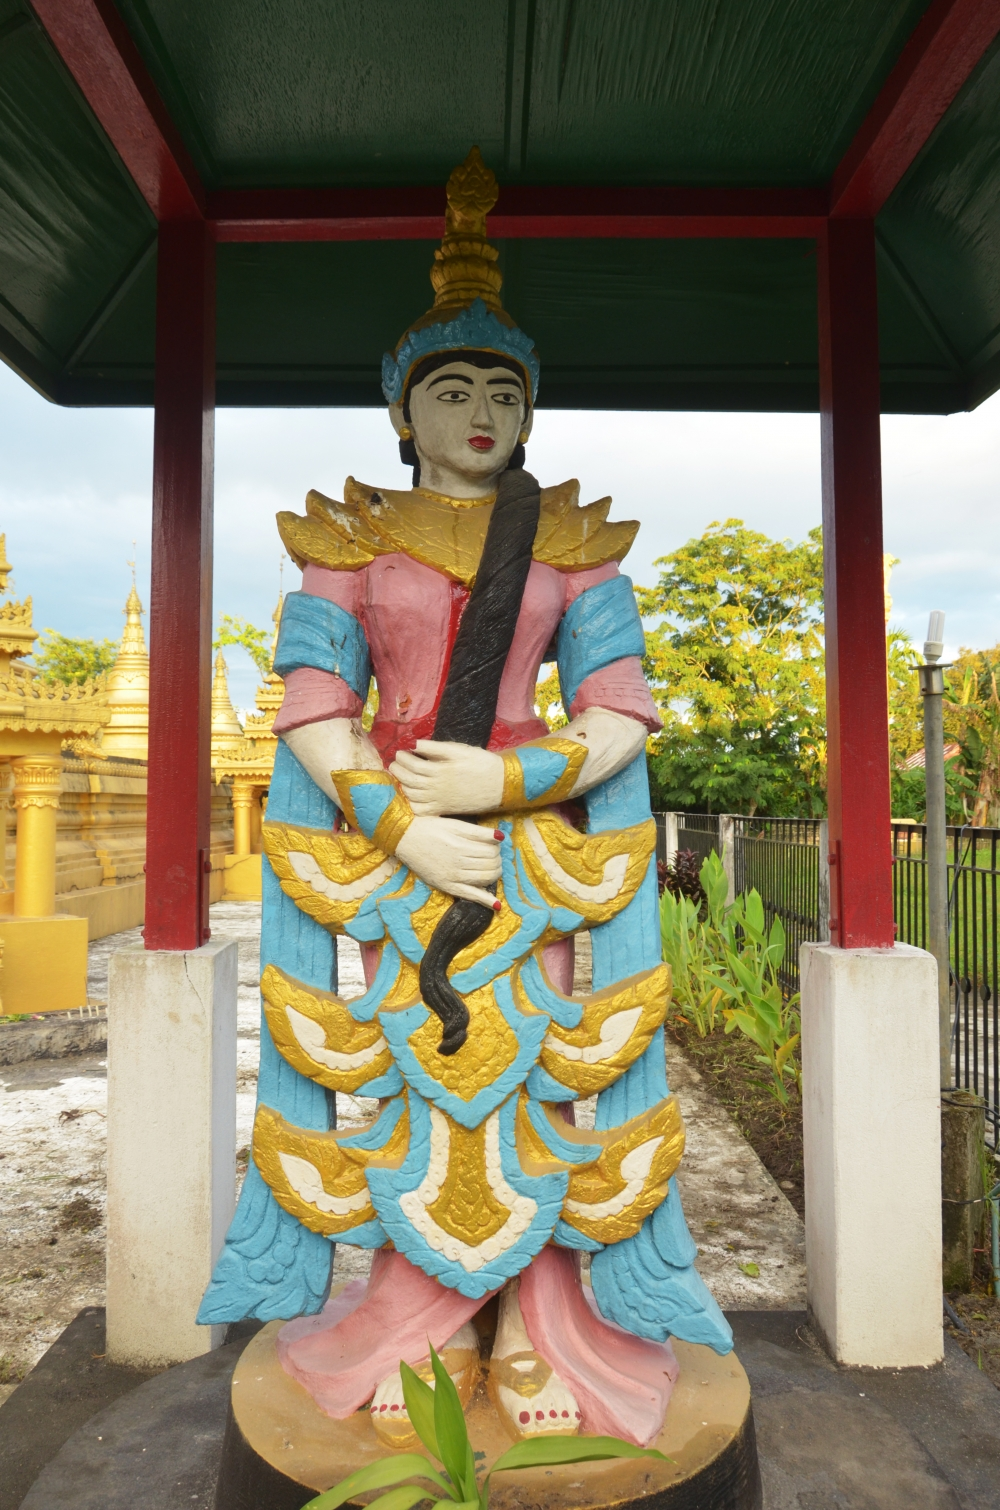 Fig. 2:A large sculpture of Vasundhara in Pariyatti Sasana Buddha Vihar, Namsai, Arunachal Pradesh. Vasundhara is the earth goddess popular among the Theravada Buddhist community of Arunachal Pradesh. According to the legend associated with her, she was the witness of the Buddha's present and previous life's deeds and is called forth to testify against the demon king, Mara, who claims Buddha's seat of meditation as his own. Vasundhara is regarded as the witness of religious donations made by devotees